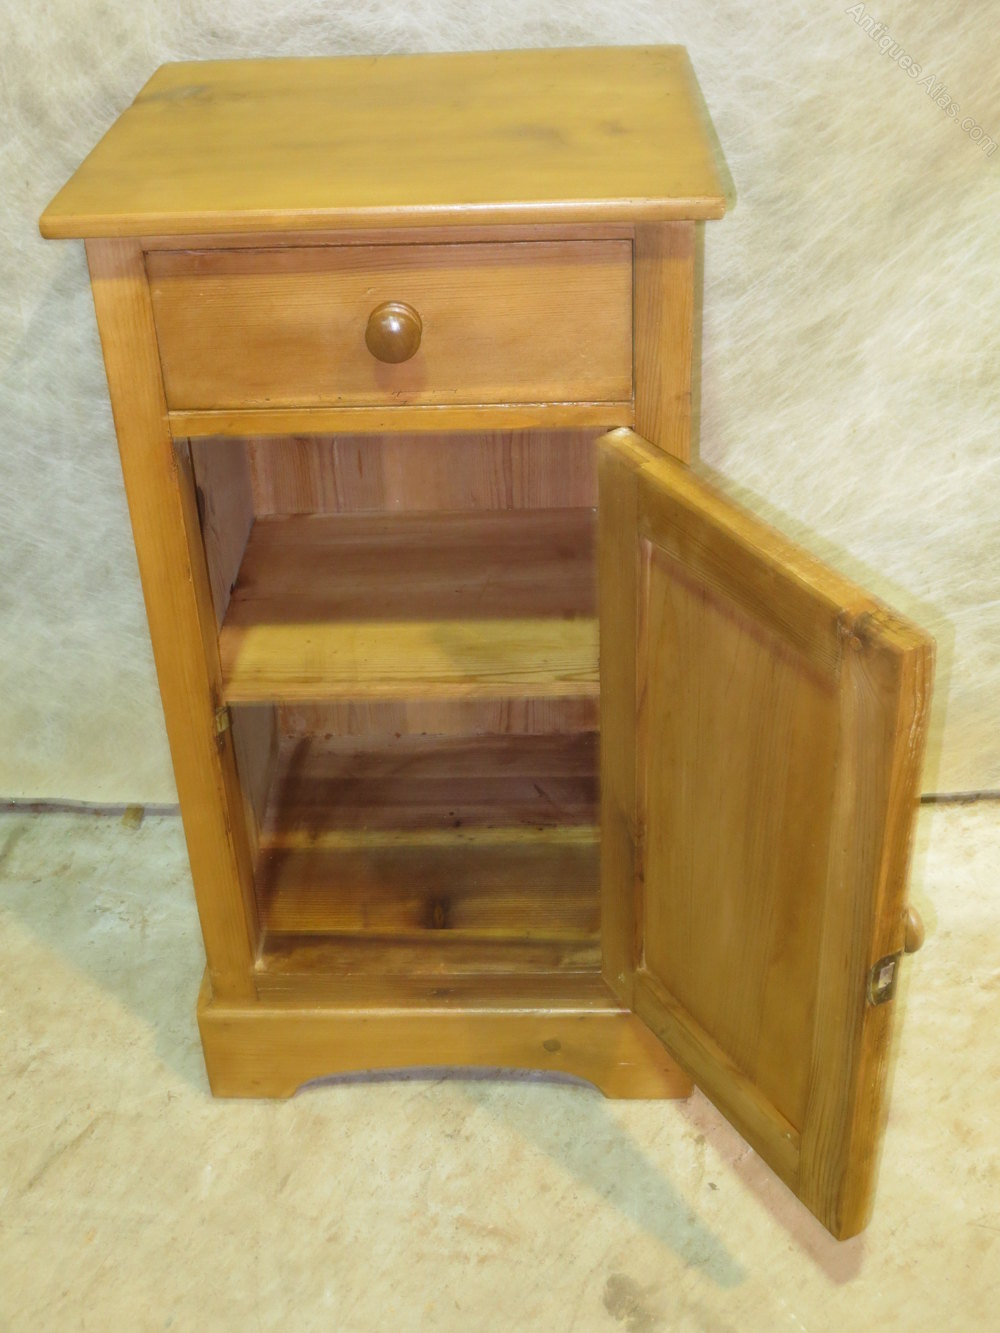 Eastern European Pine Pot Cupboard Antique Pot Cupboards - Eastern European Pine Pot Cupboard - Antiques Atlas